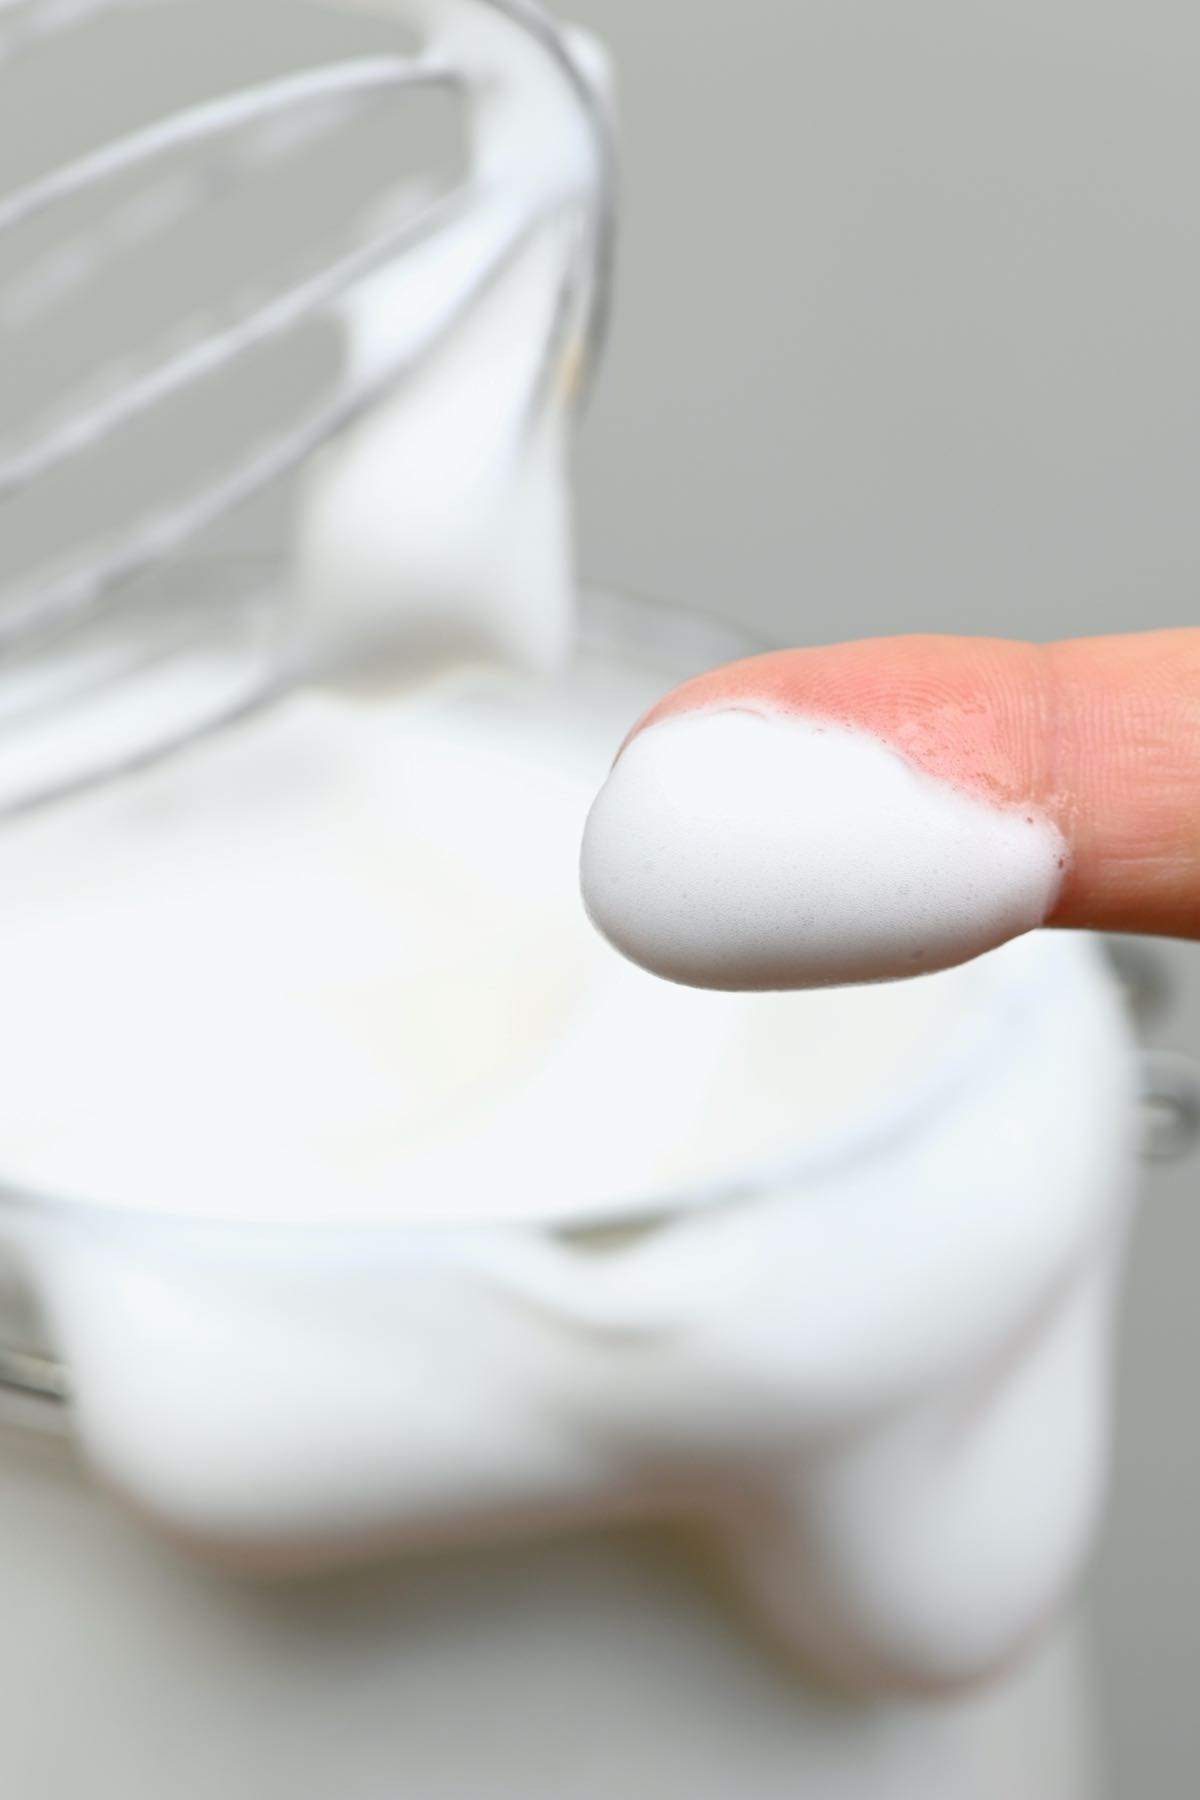 A finger dipped in aquafaba